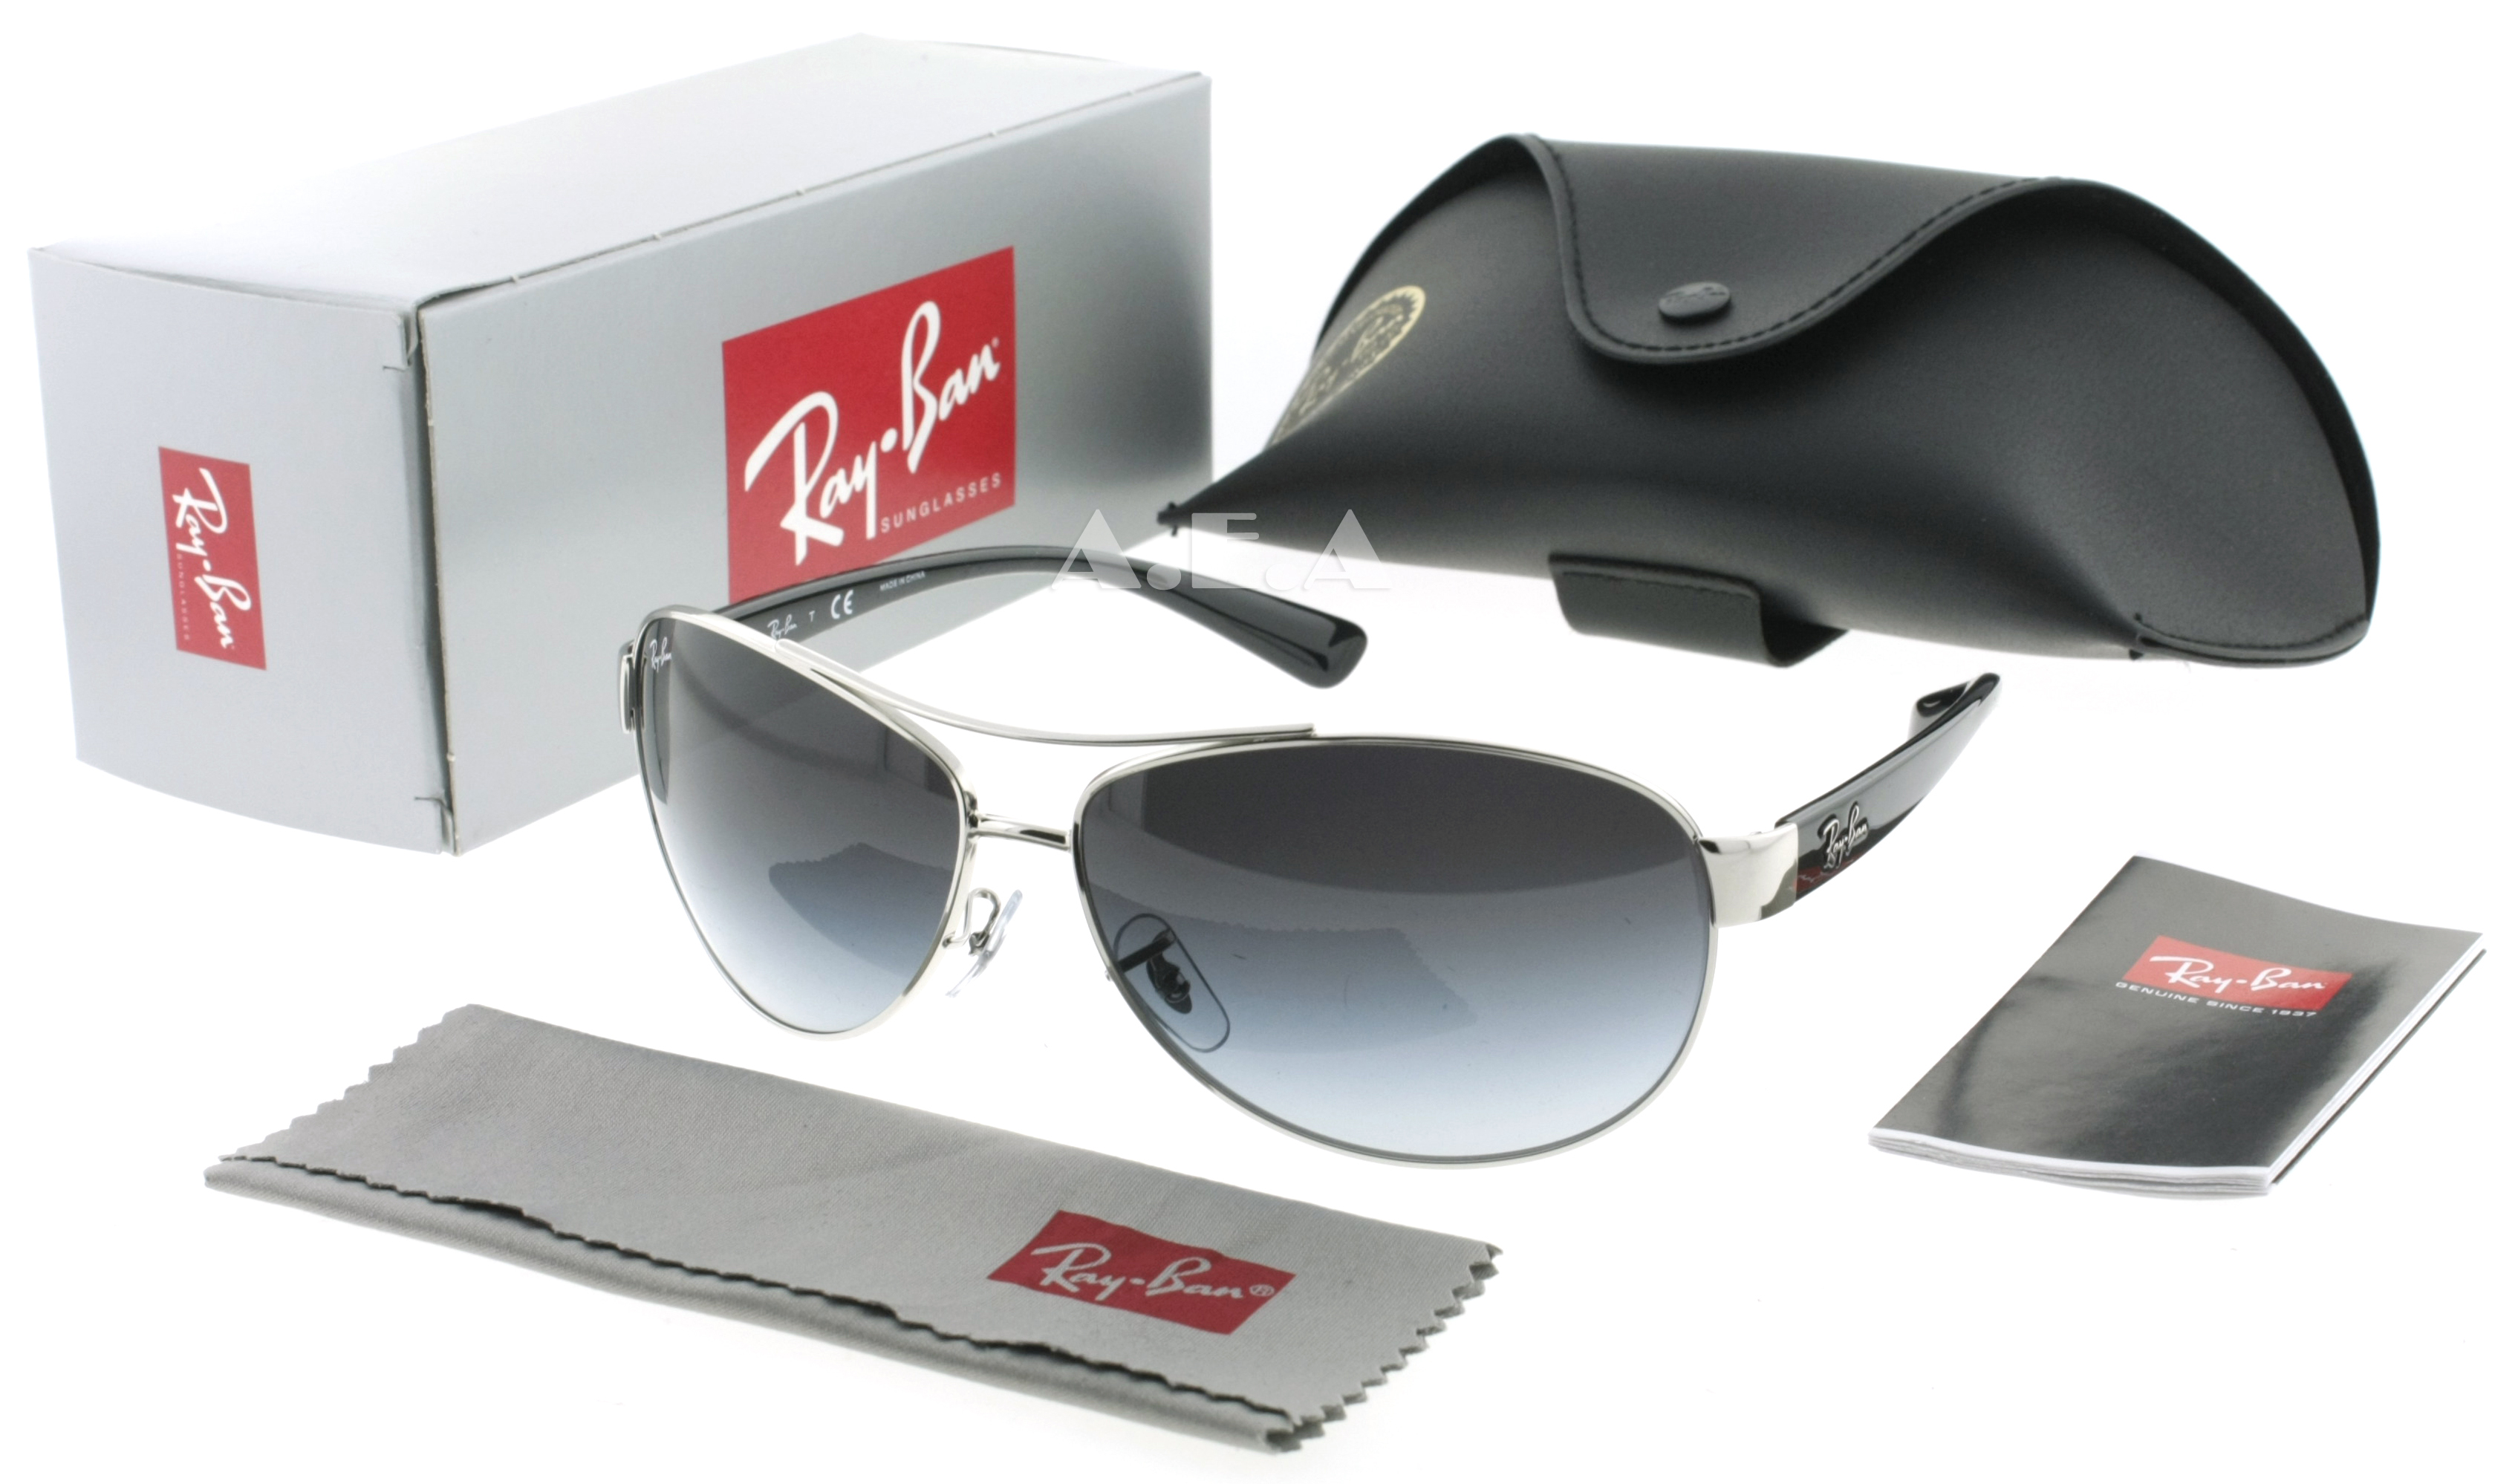 968887f8d59b Picture Of Costa Sunglasses Gift Card